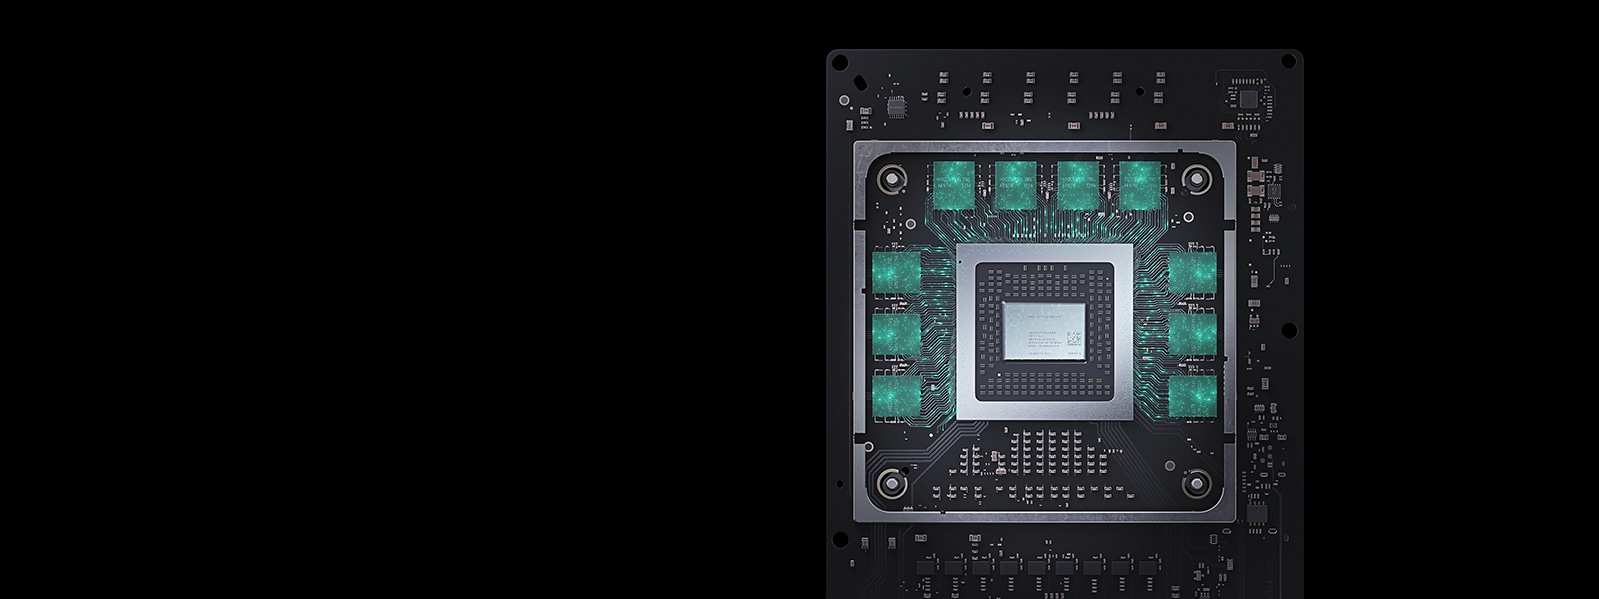 Detailed Image of Xbox Series X processor layout